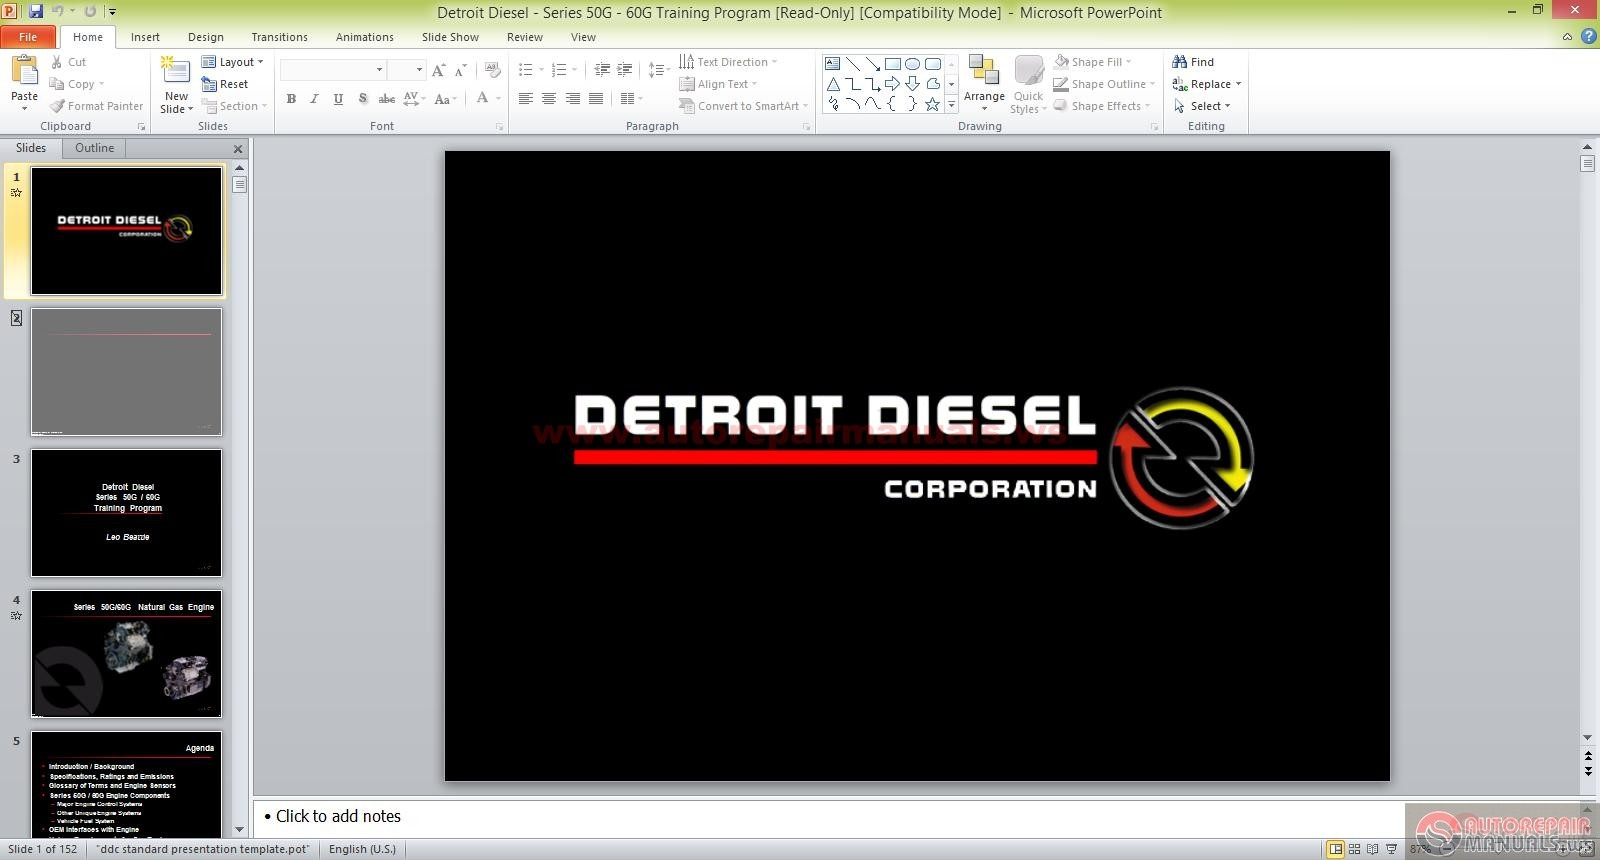 detroit diesel series g g training program auto repair detroit diesel series 50g 60g training program size 10 2mb language english type ppt pages 152